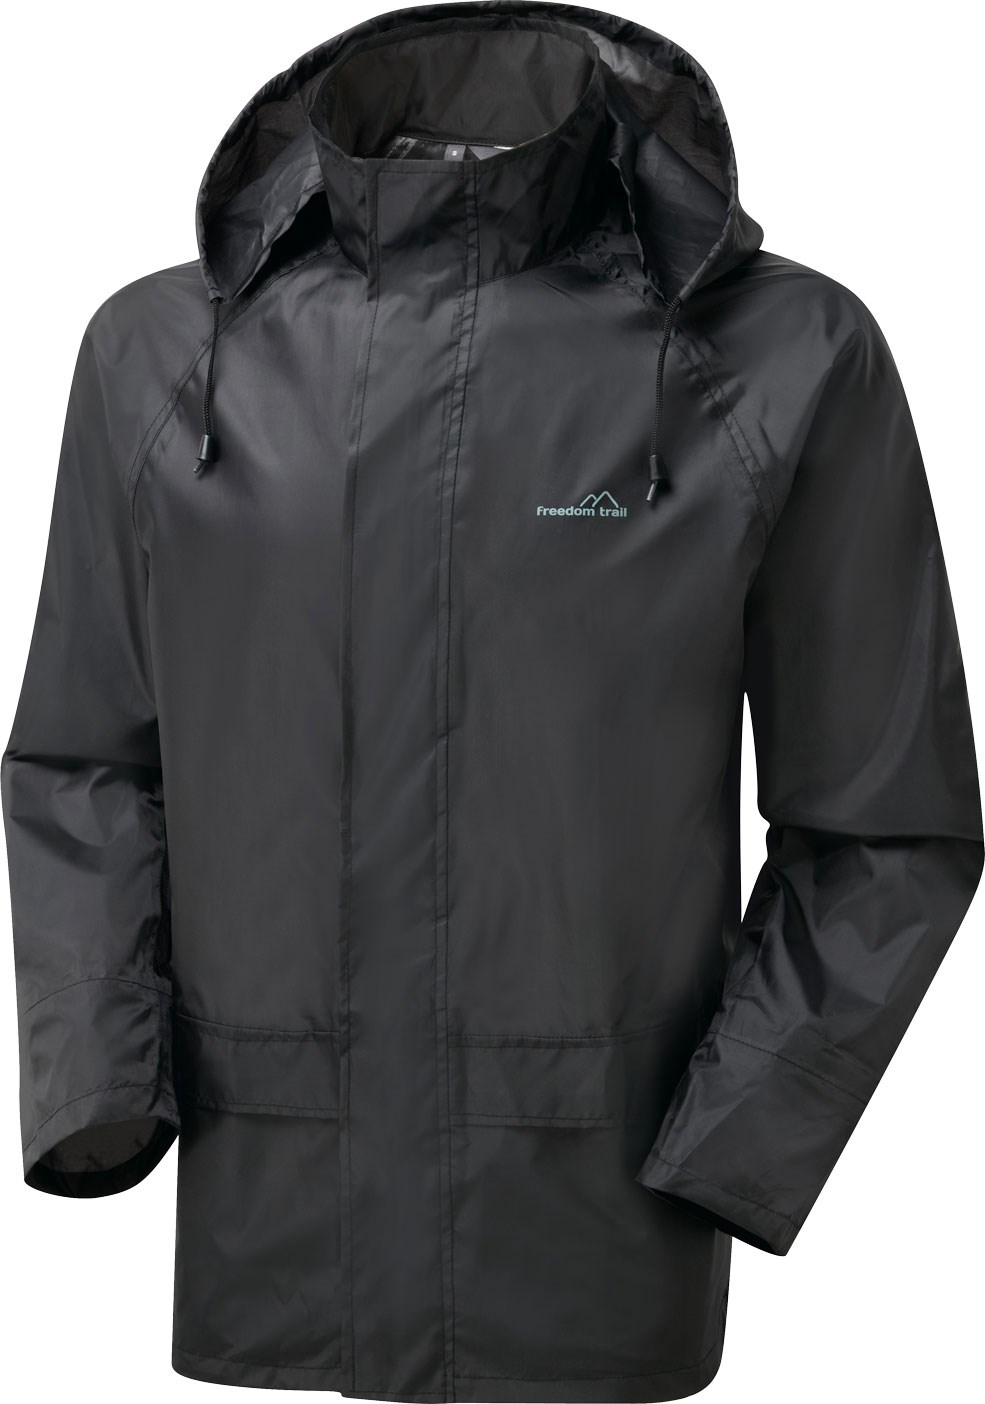 Find great deals on eBay for rainproof jackets. Shop with confidence.